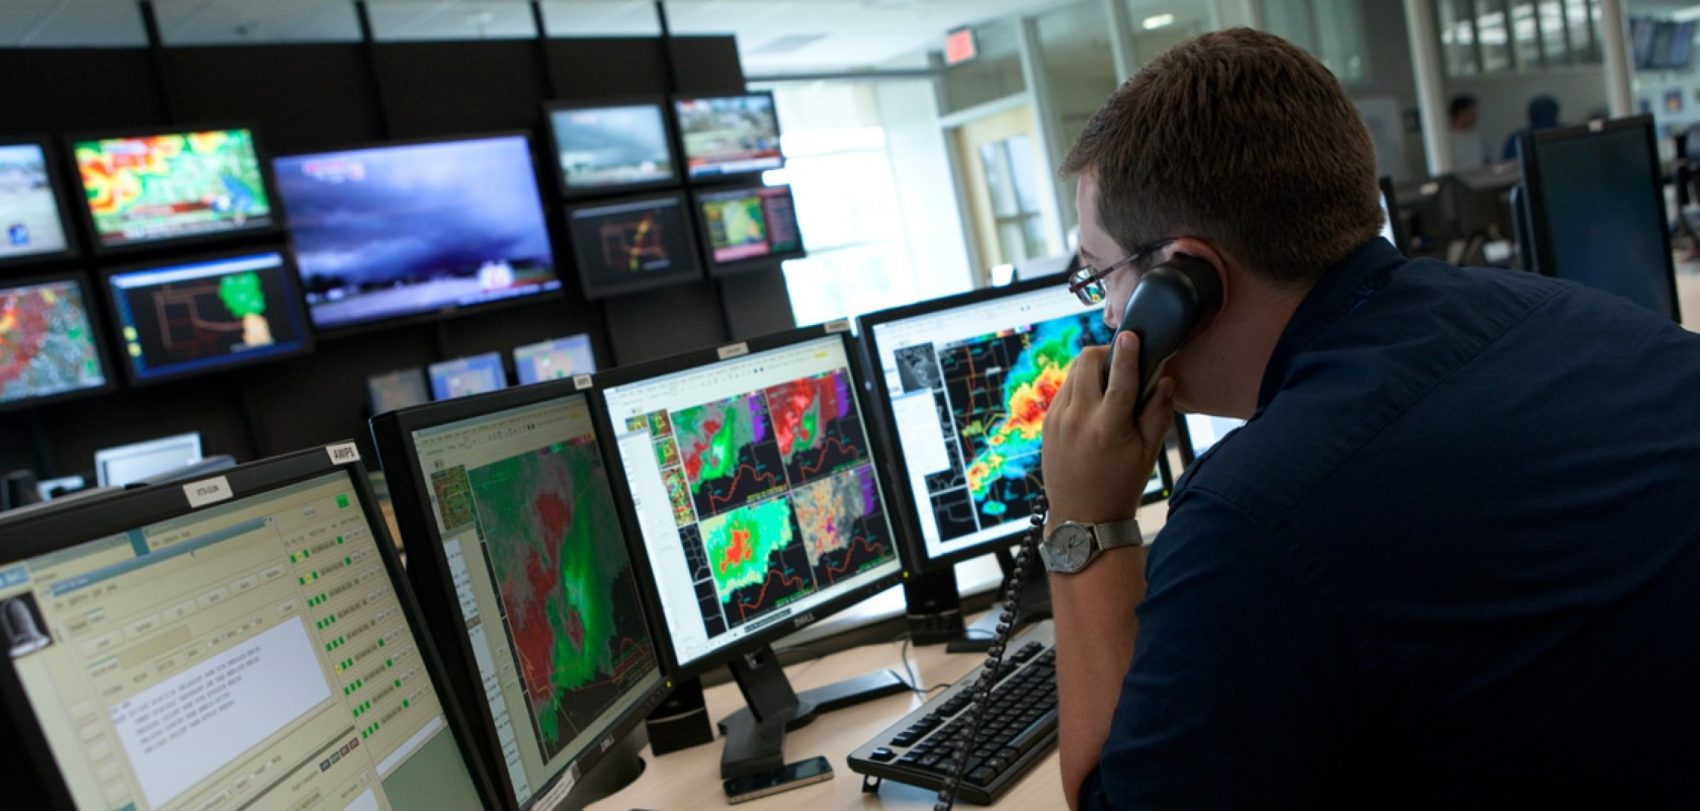 Forecast, NOAA, 6 thing, Weather, Climate, Tornado, Hurricane, Snow Storm, Flooding